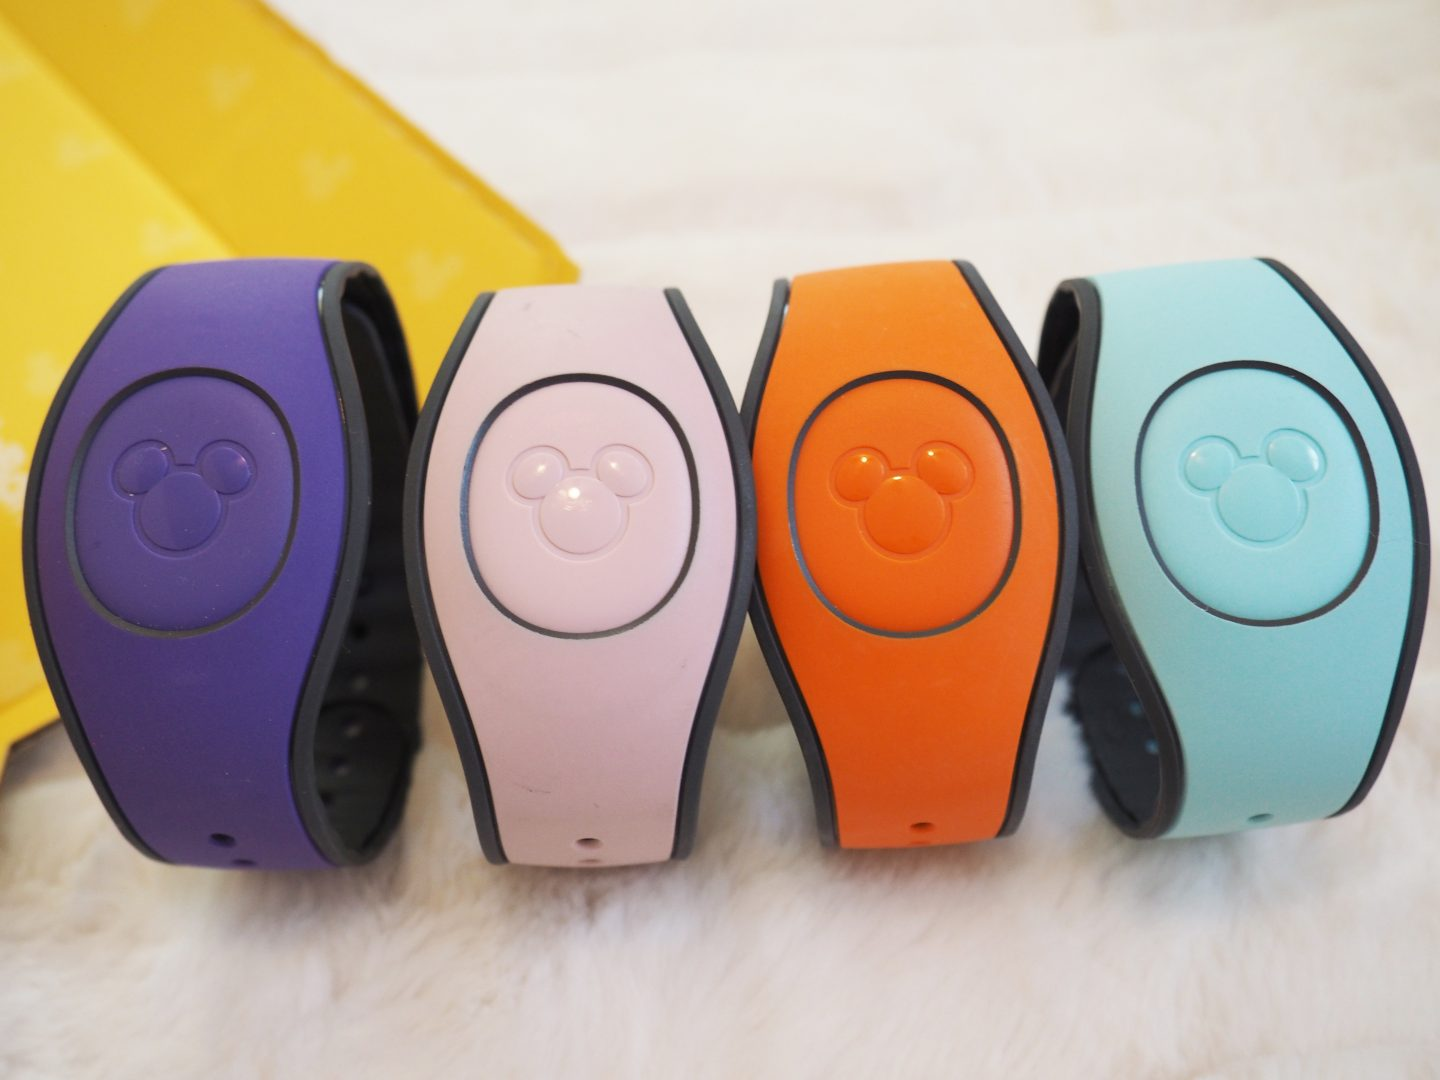 disney magic bands come in many colors